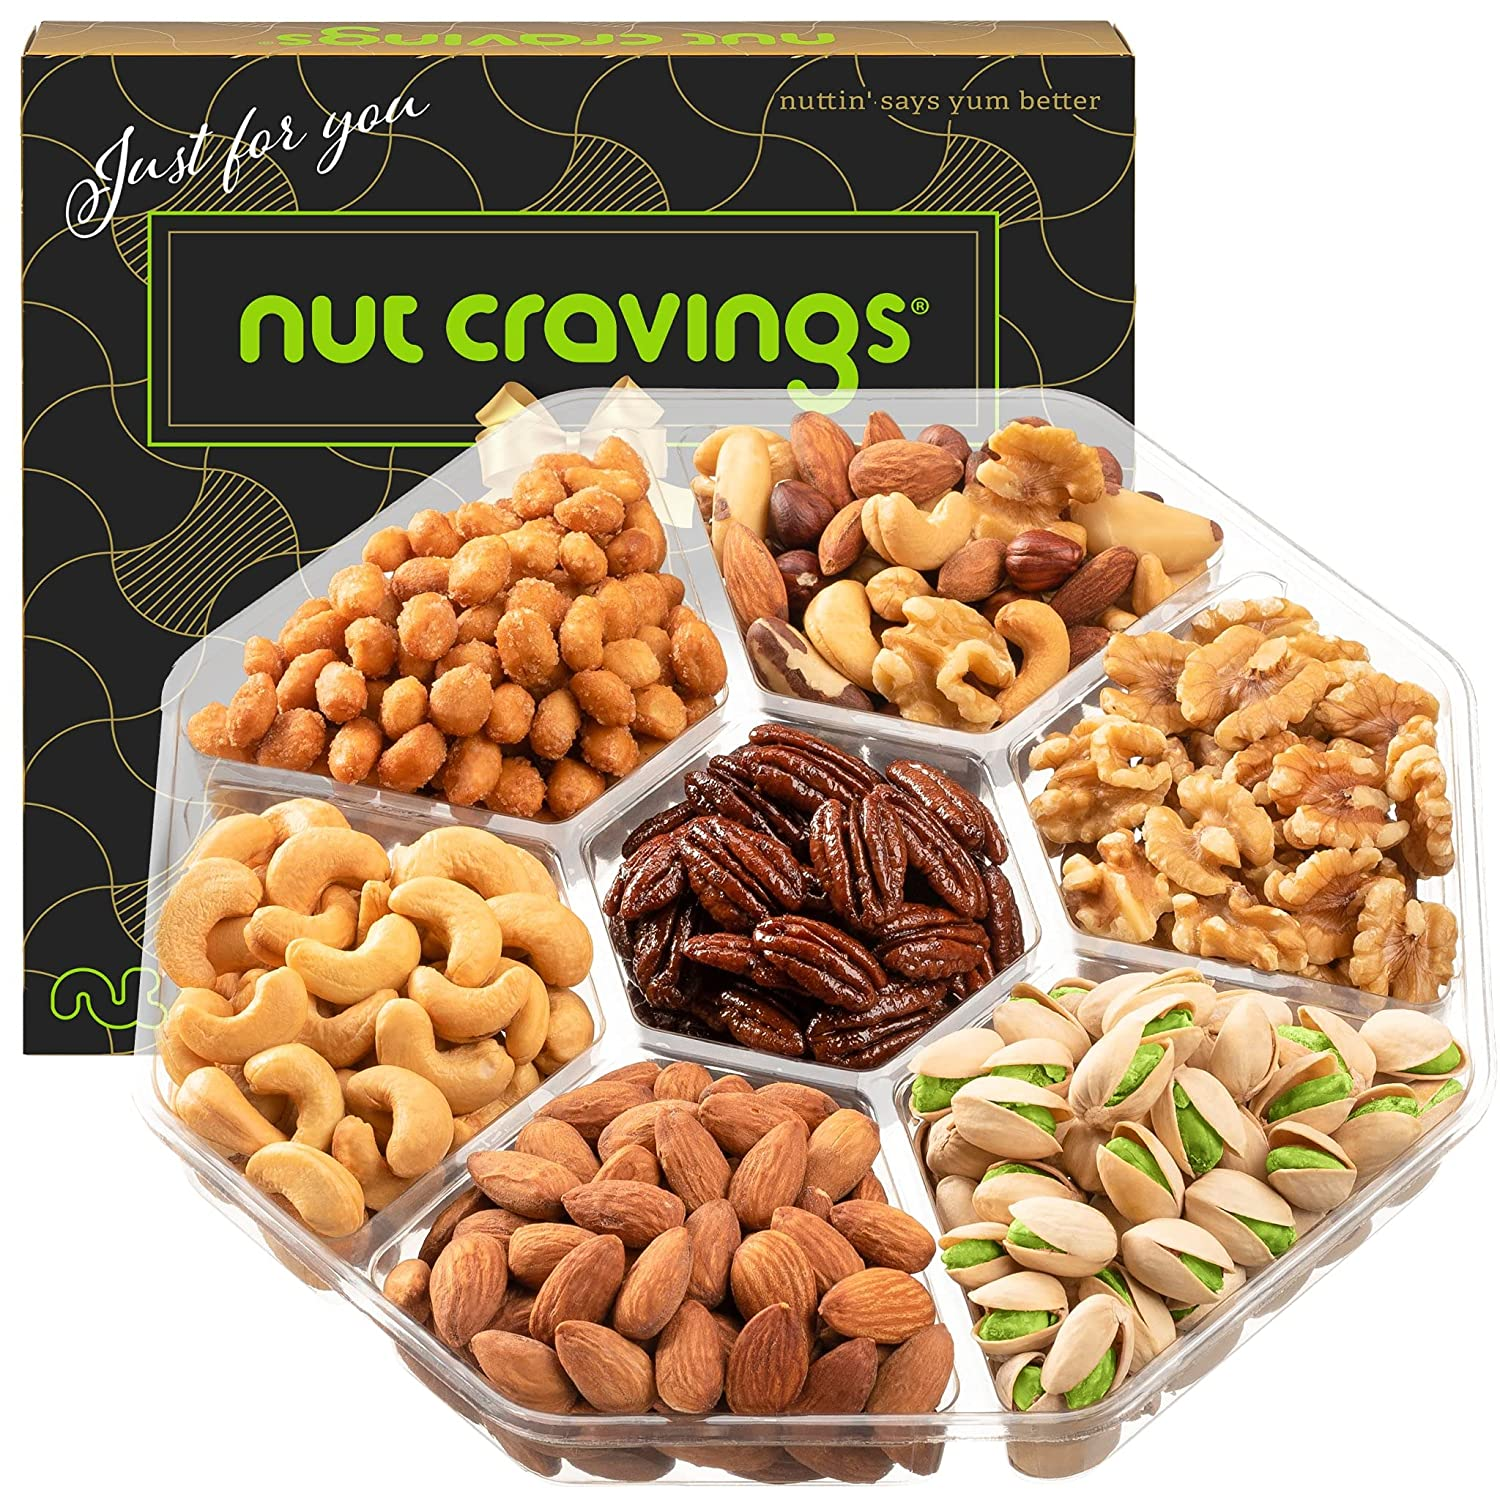 Gourmet Nut Gift Basket in Brown Box (7 Piece Assortment, 1 LB) - Fathers Day Prime Arrangement Platter, Birthday Care Package Variety, Healthy Food Kosher Snack Tray for Mom, Women, Men, Adults